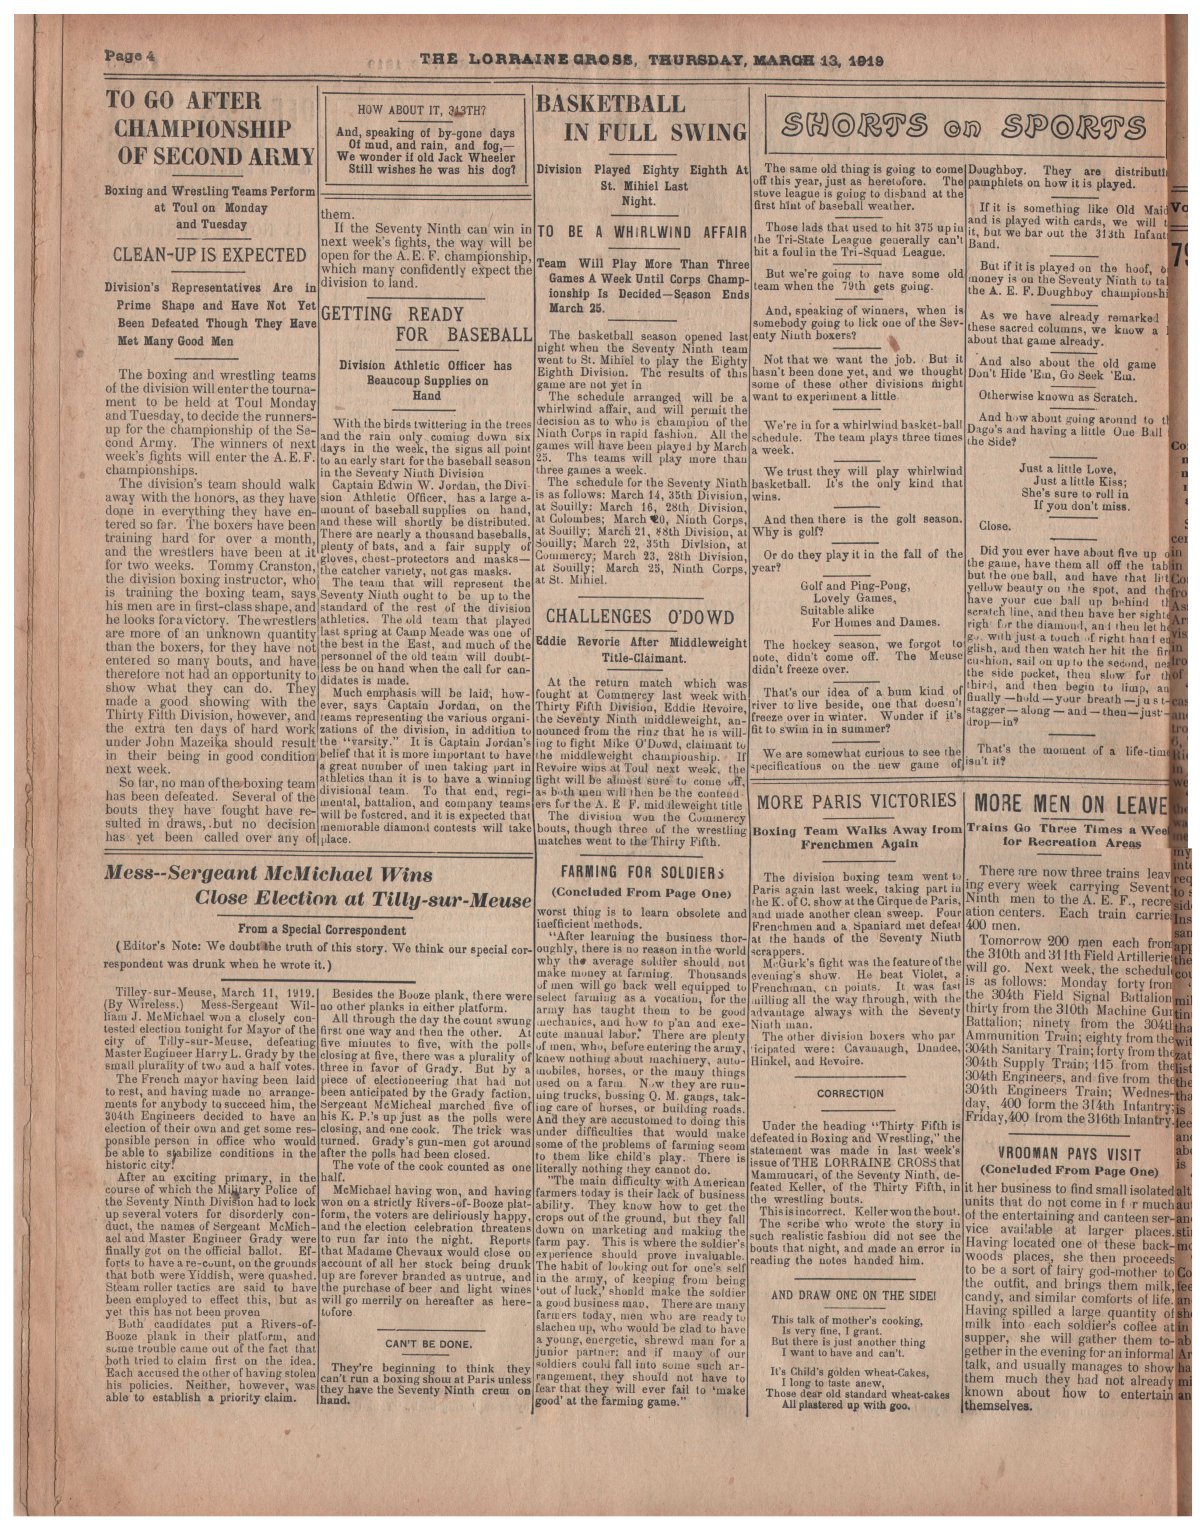 Lorraine Cross Newspaper Volume 1 Number 5 France March 13 1919 Page 4